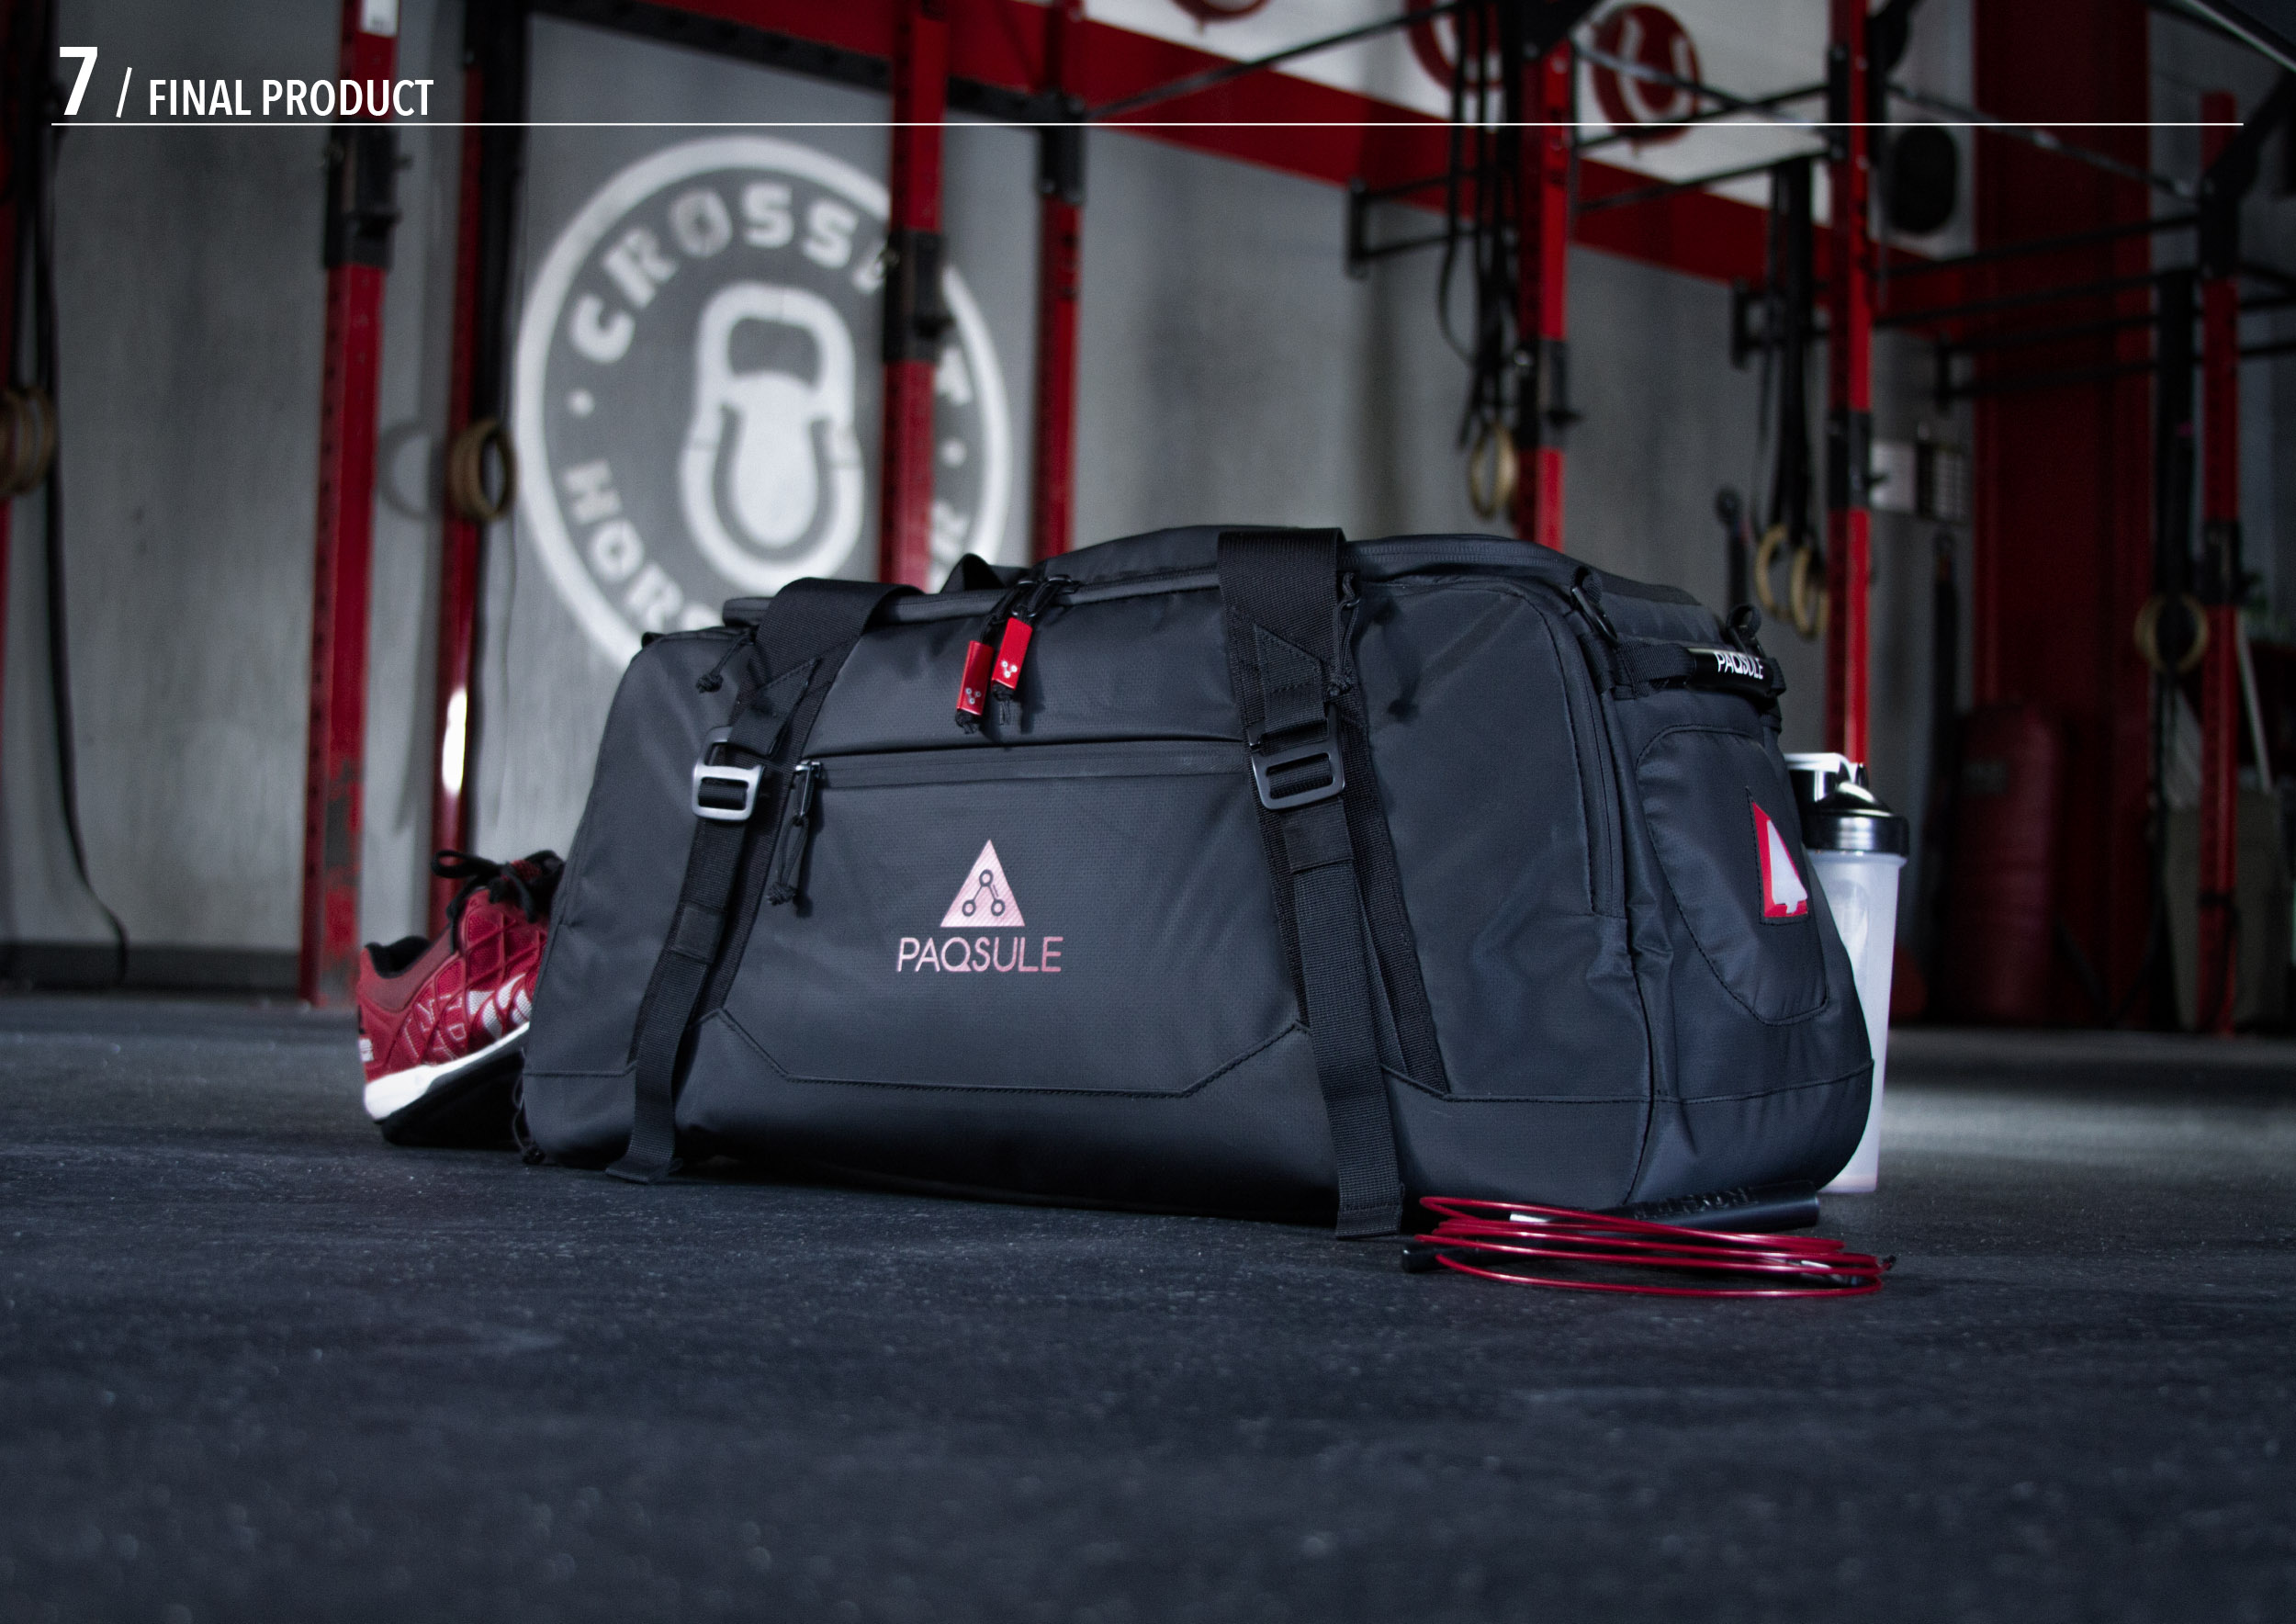 Paqsule Duffle Product Design Sports Duffle